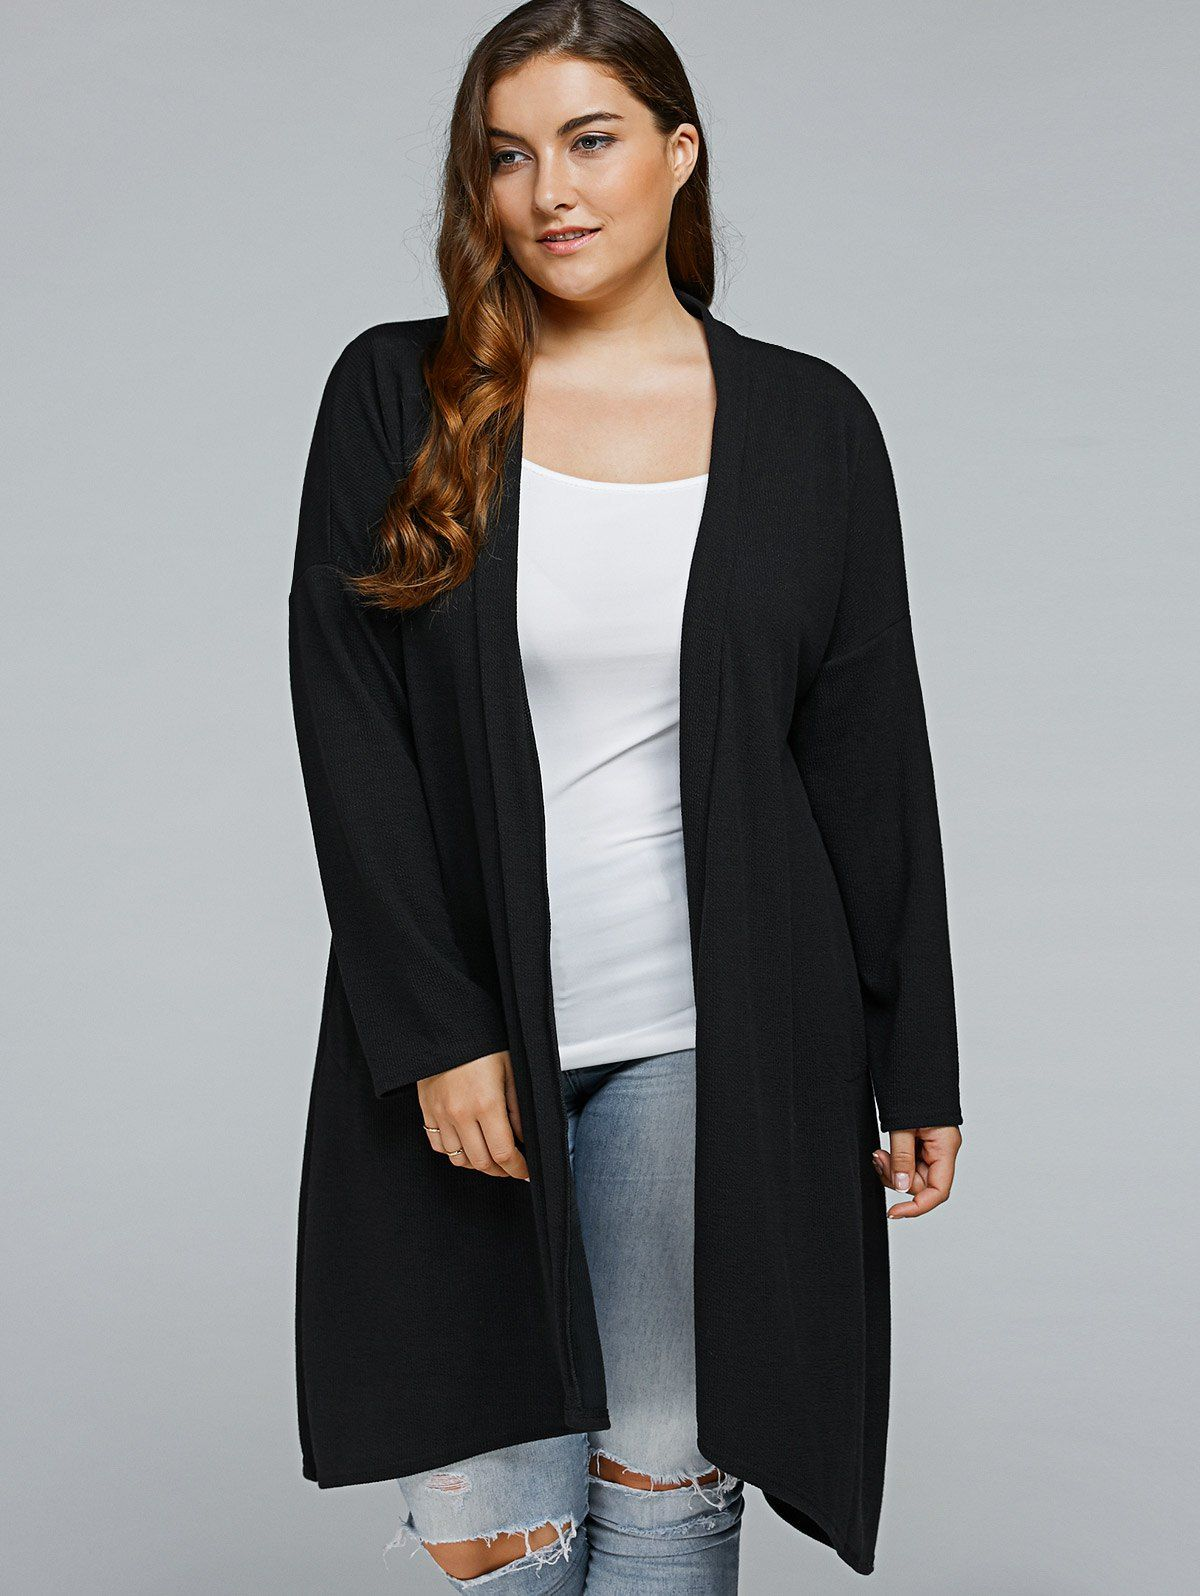 c34f88e5ff2  13.54 Plus Size Asymmetric Long Cardigan